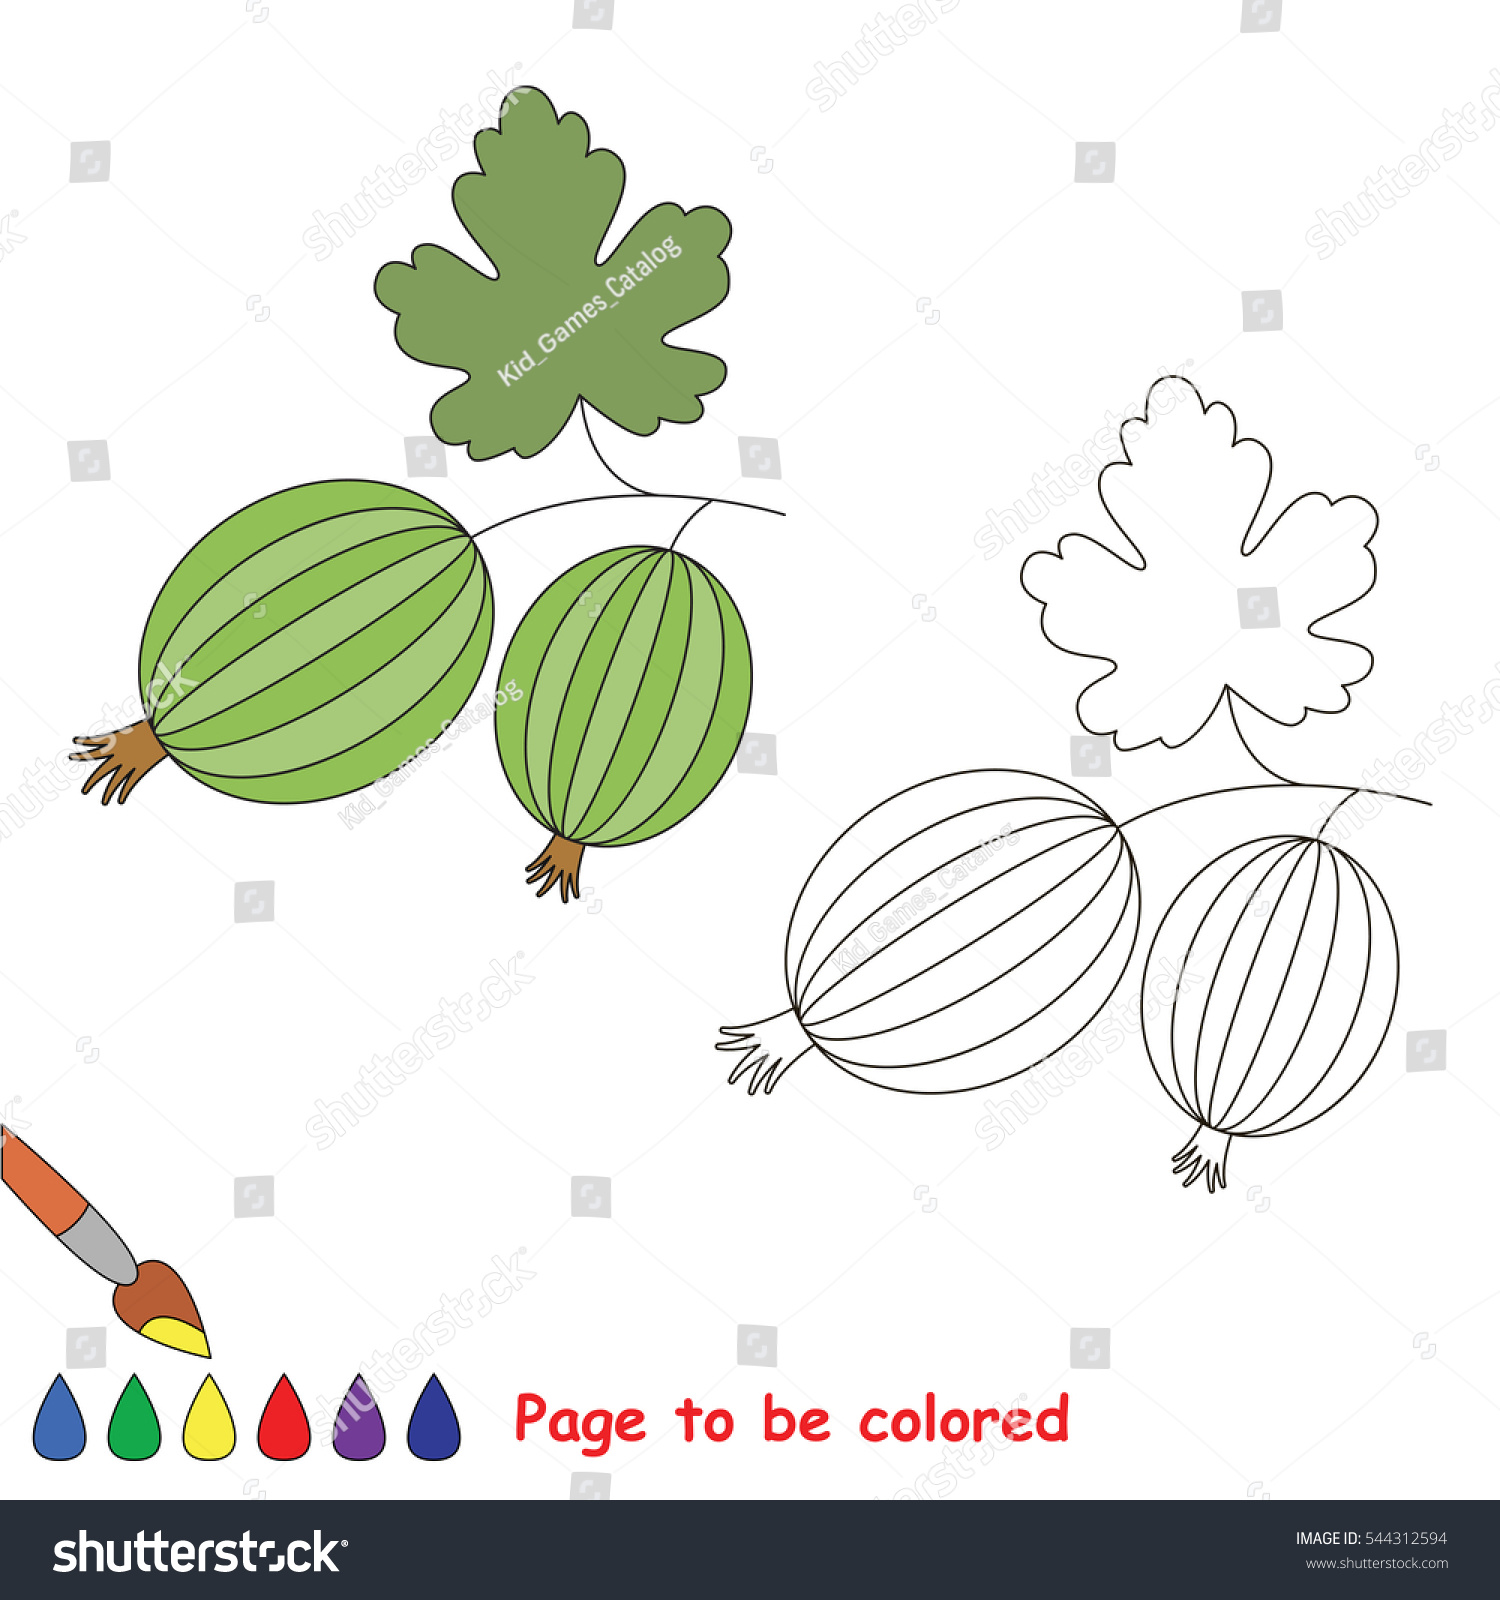 Educational Worksheet Be Colored By Sample Stock Vector 544312594 ...